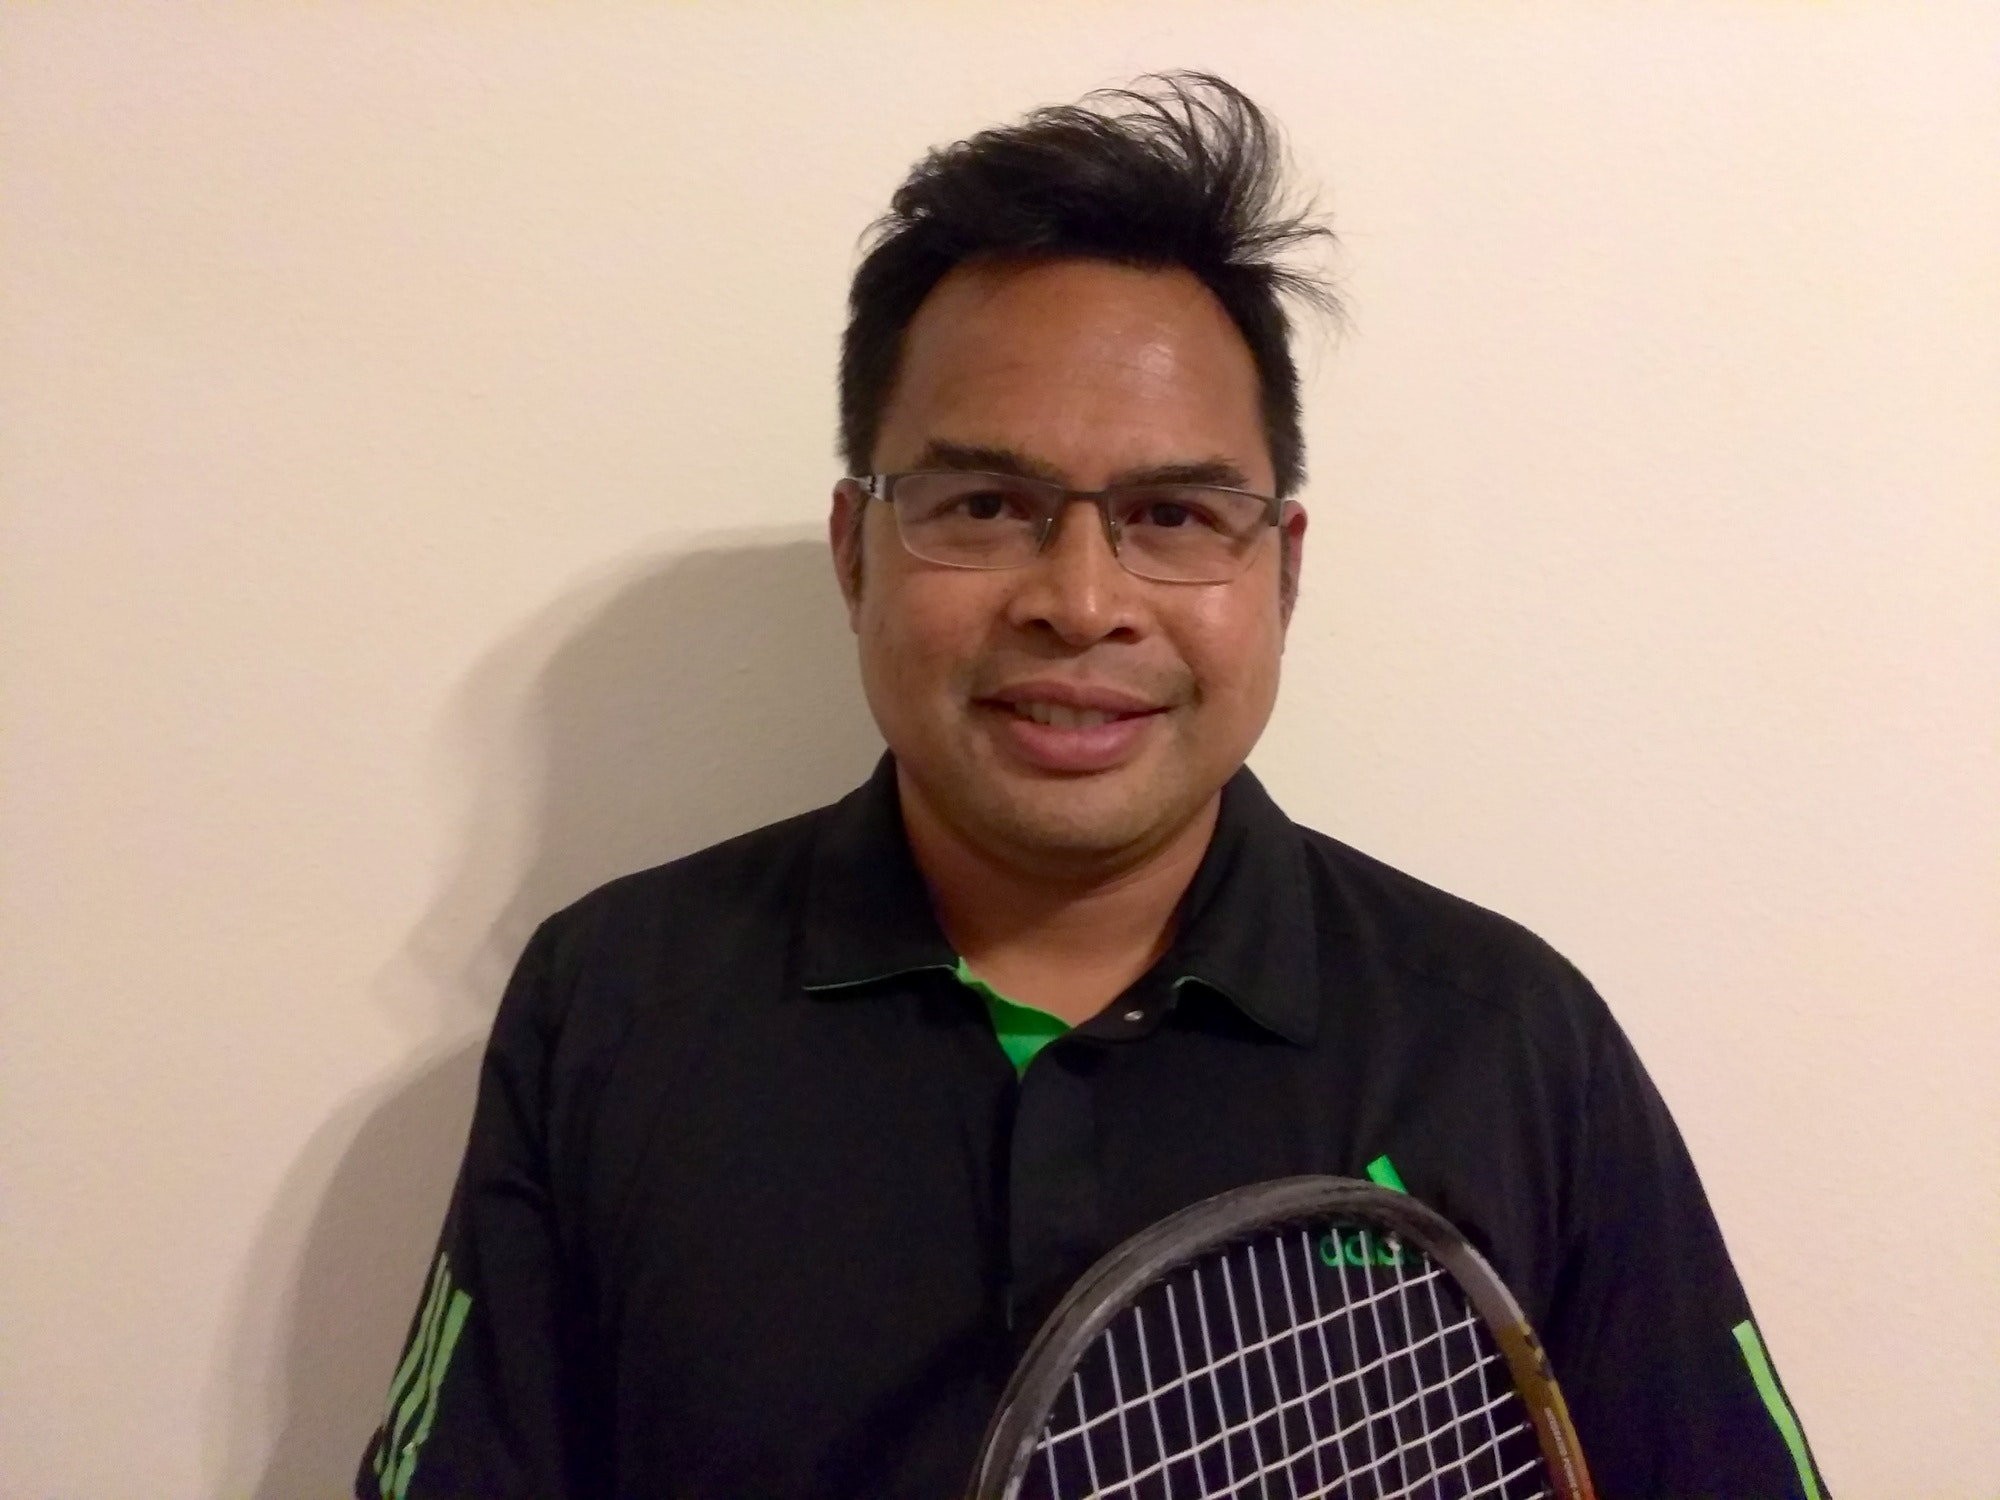 Aaron P. teaches tennis lessons in Pearland, TX